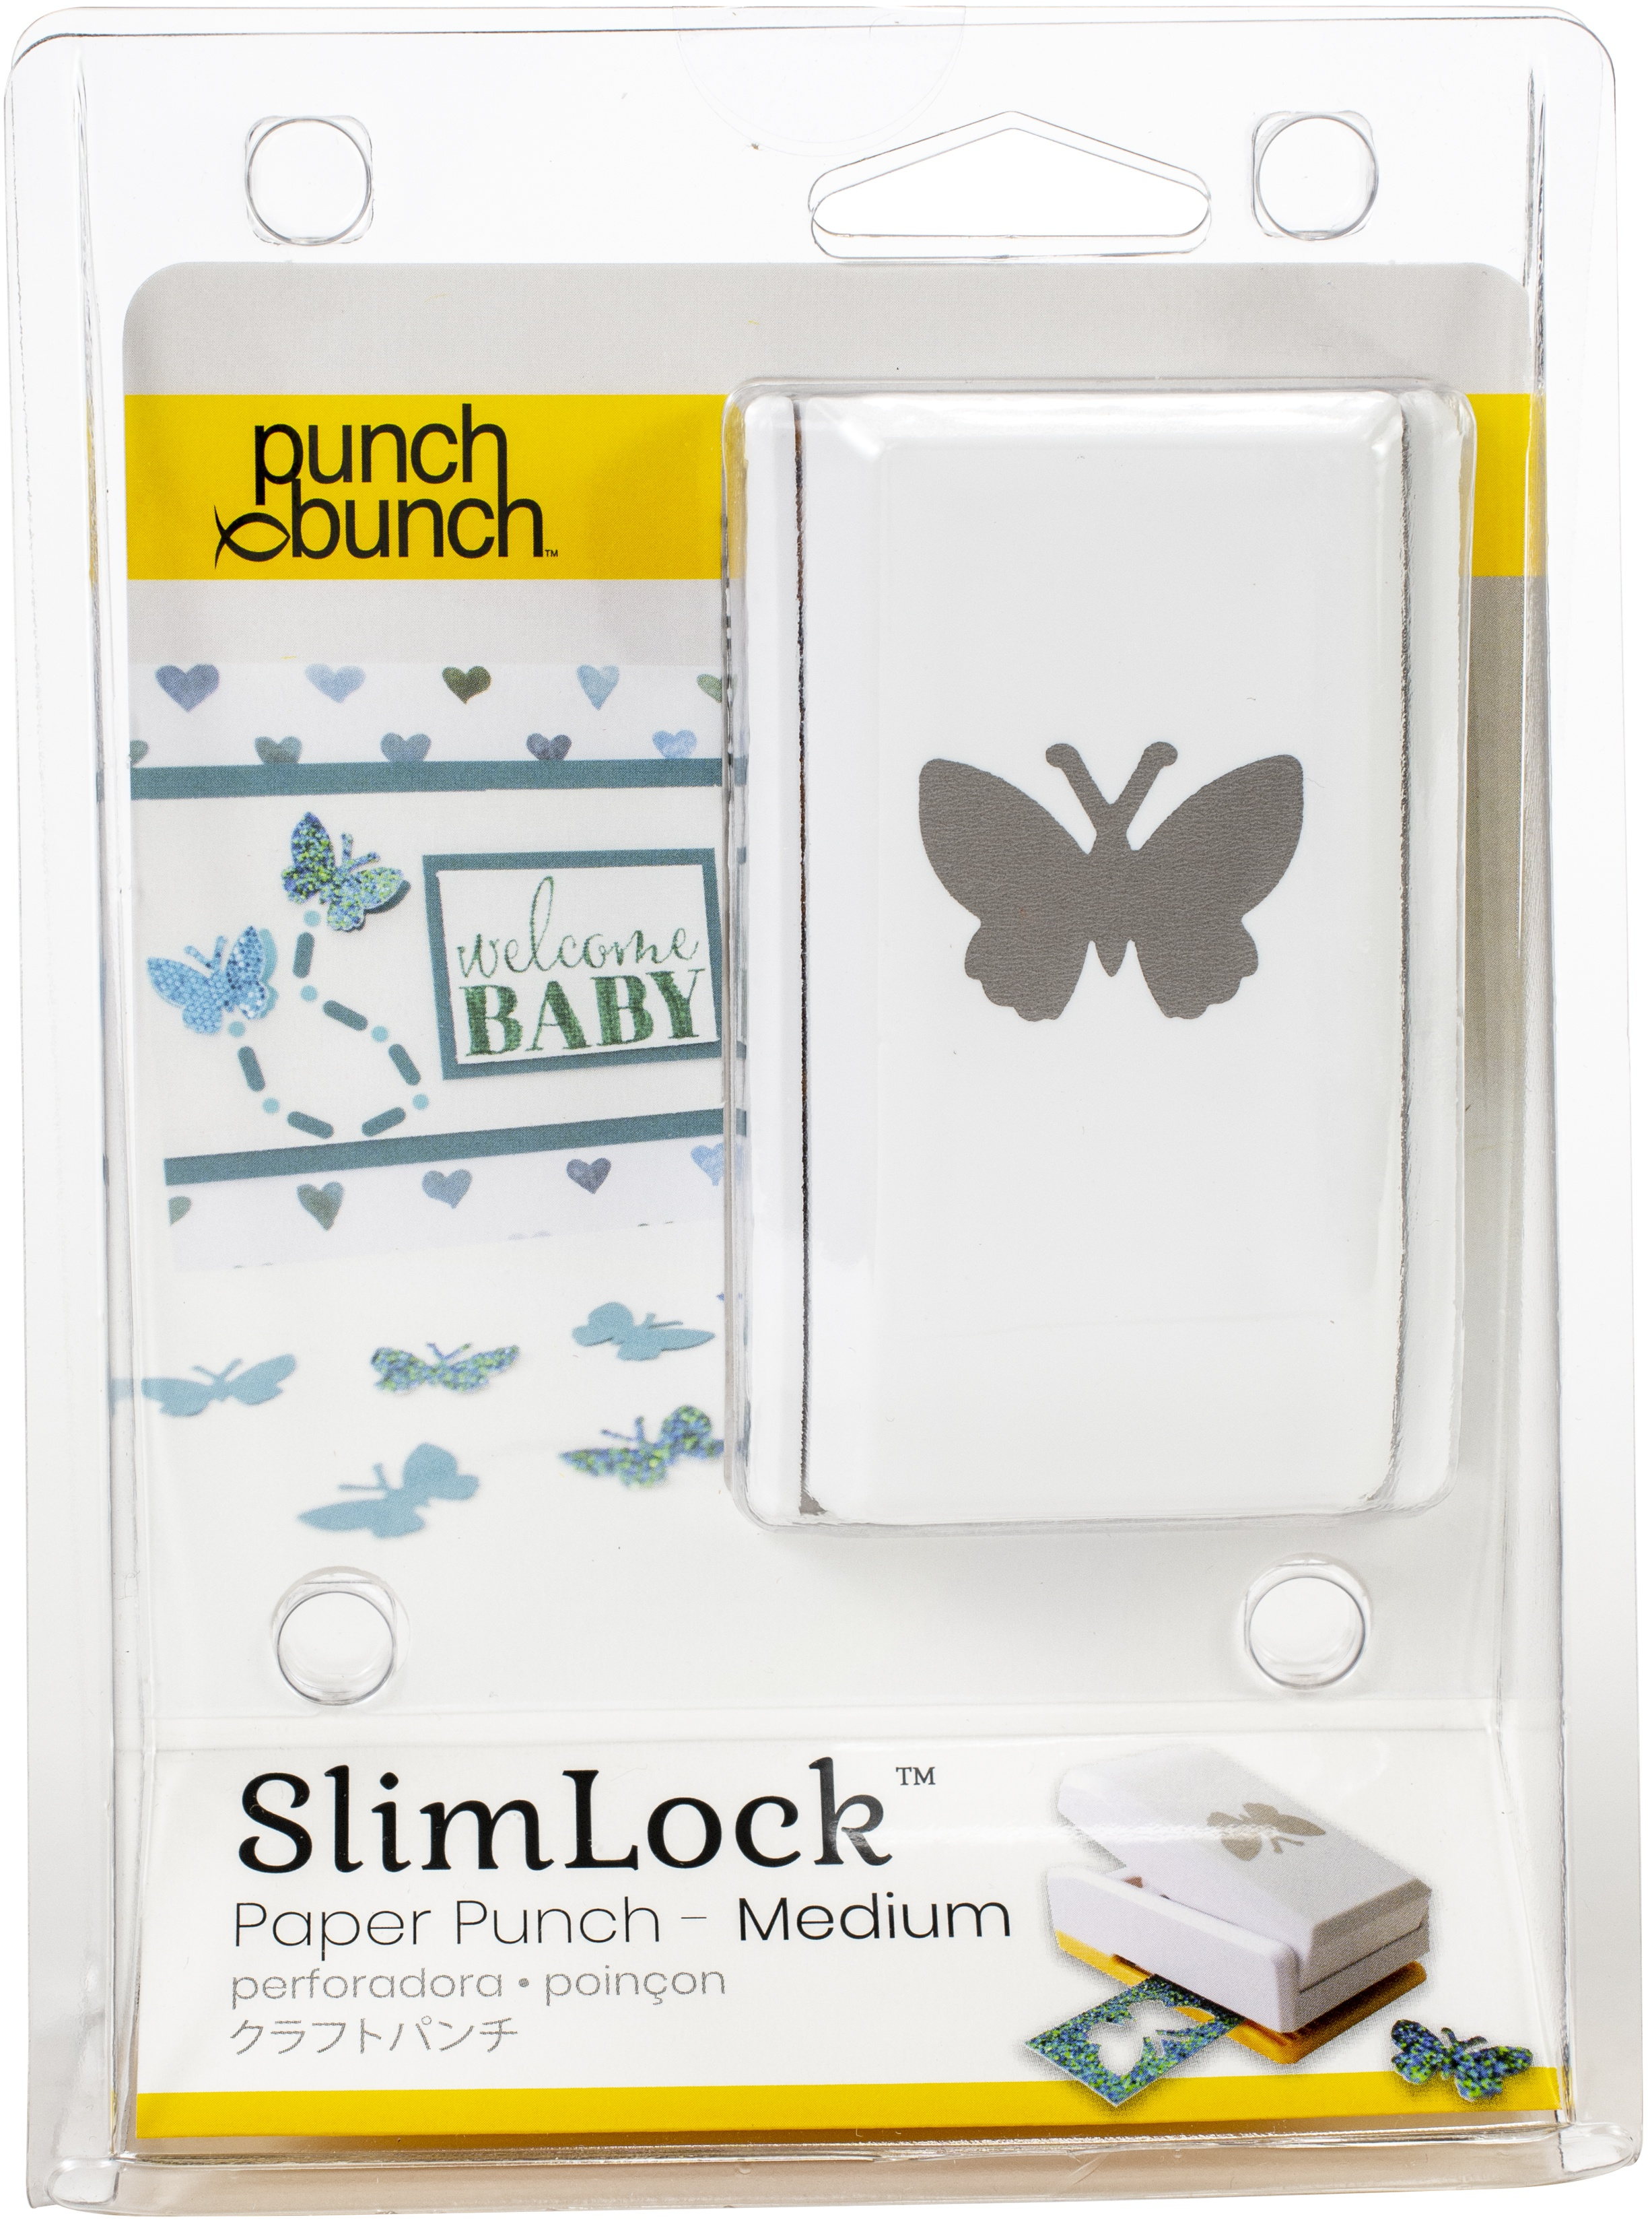 Punch Bunch SlimLock Medium Punch-Butterfly 1X.75